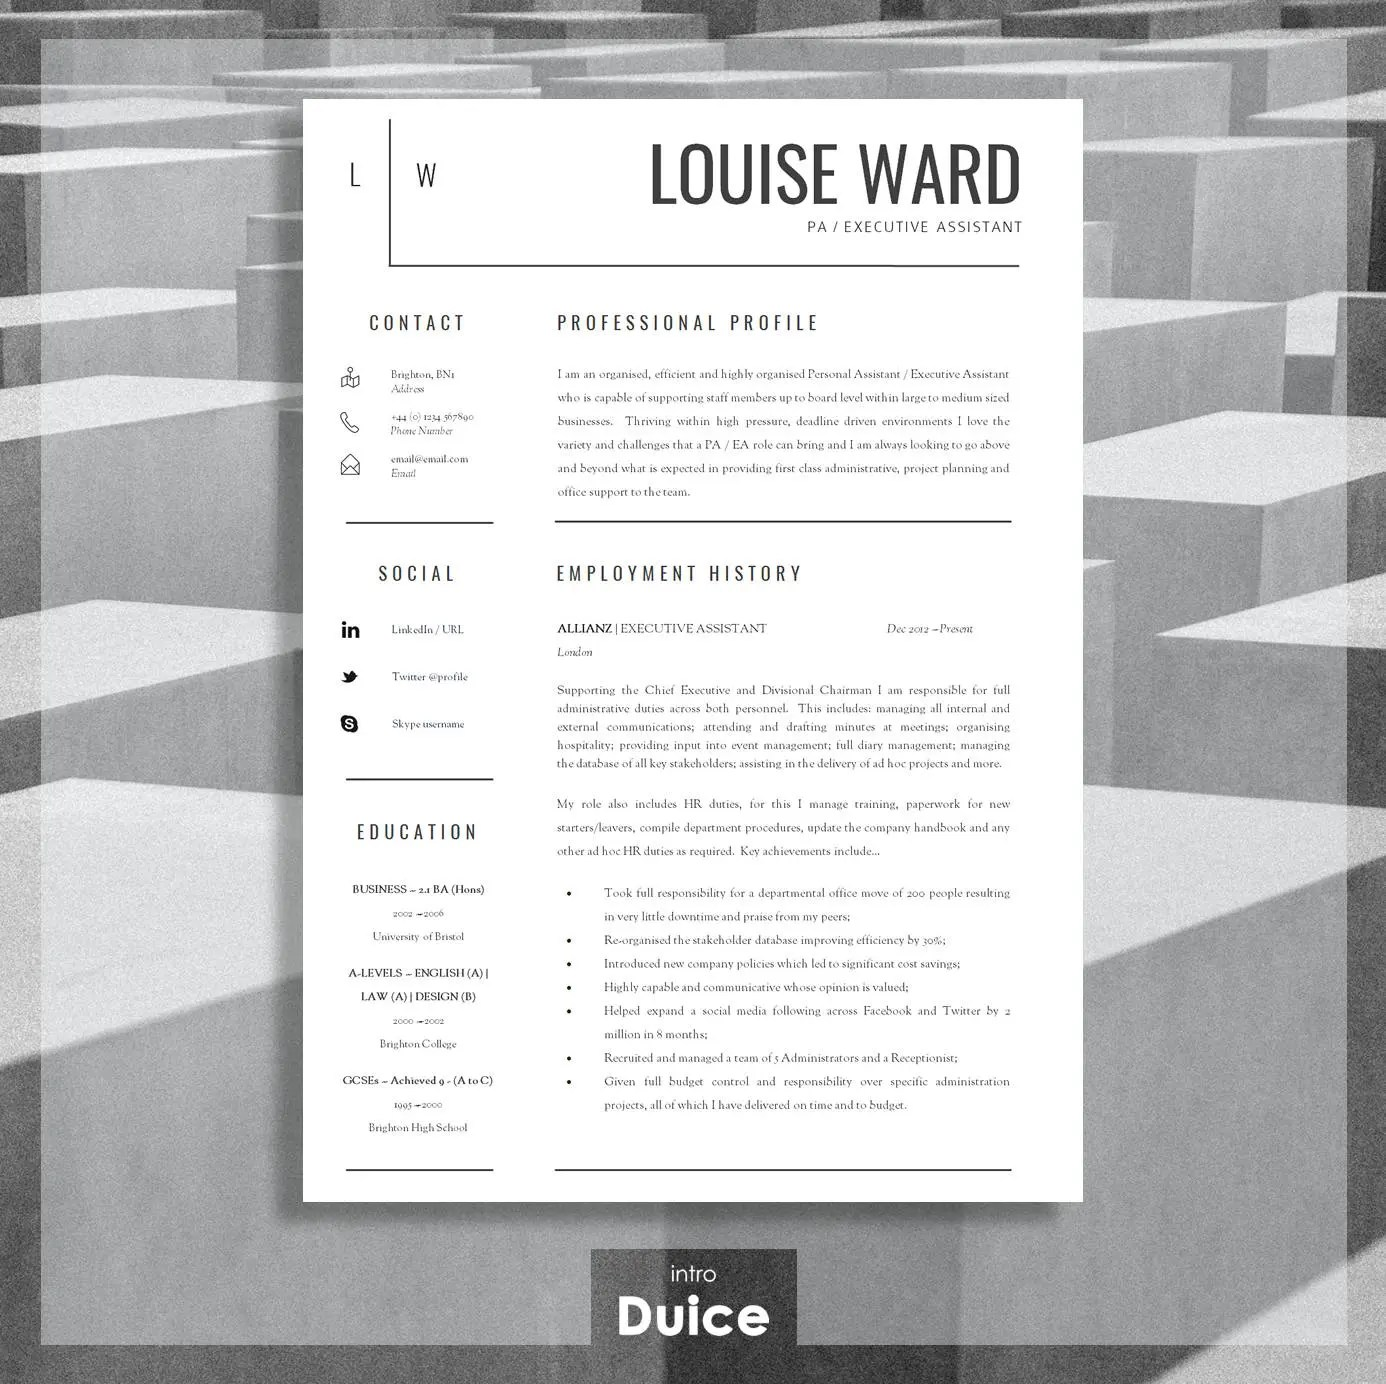 Resume Template CV Template Cover Letter Resume Advice - what is a resume profile